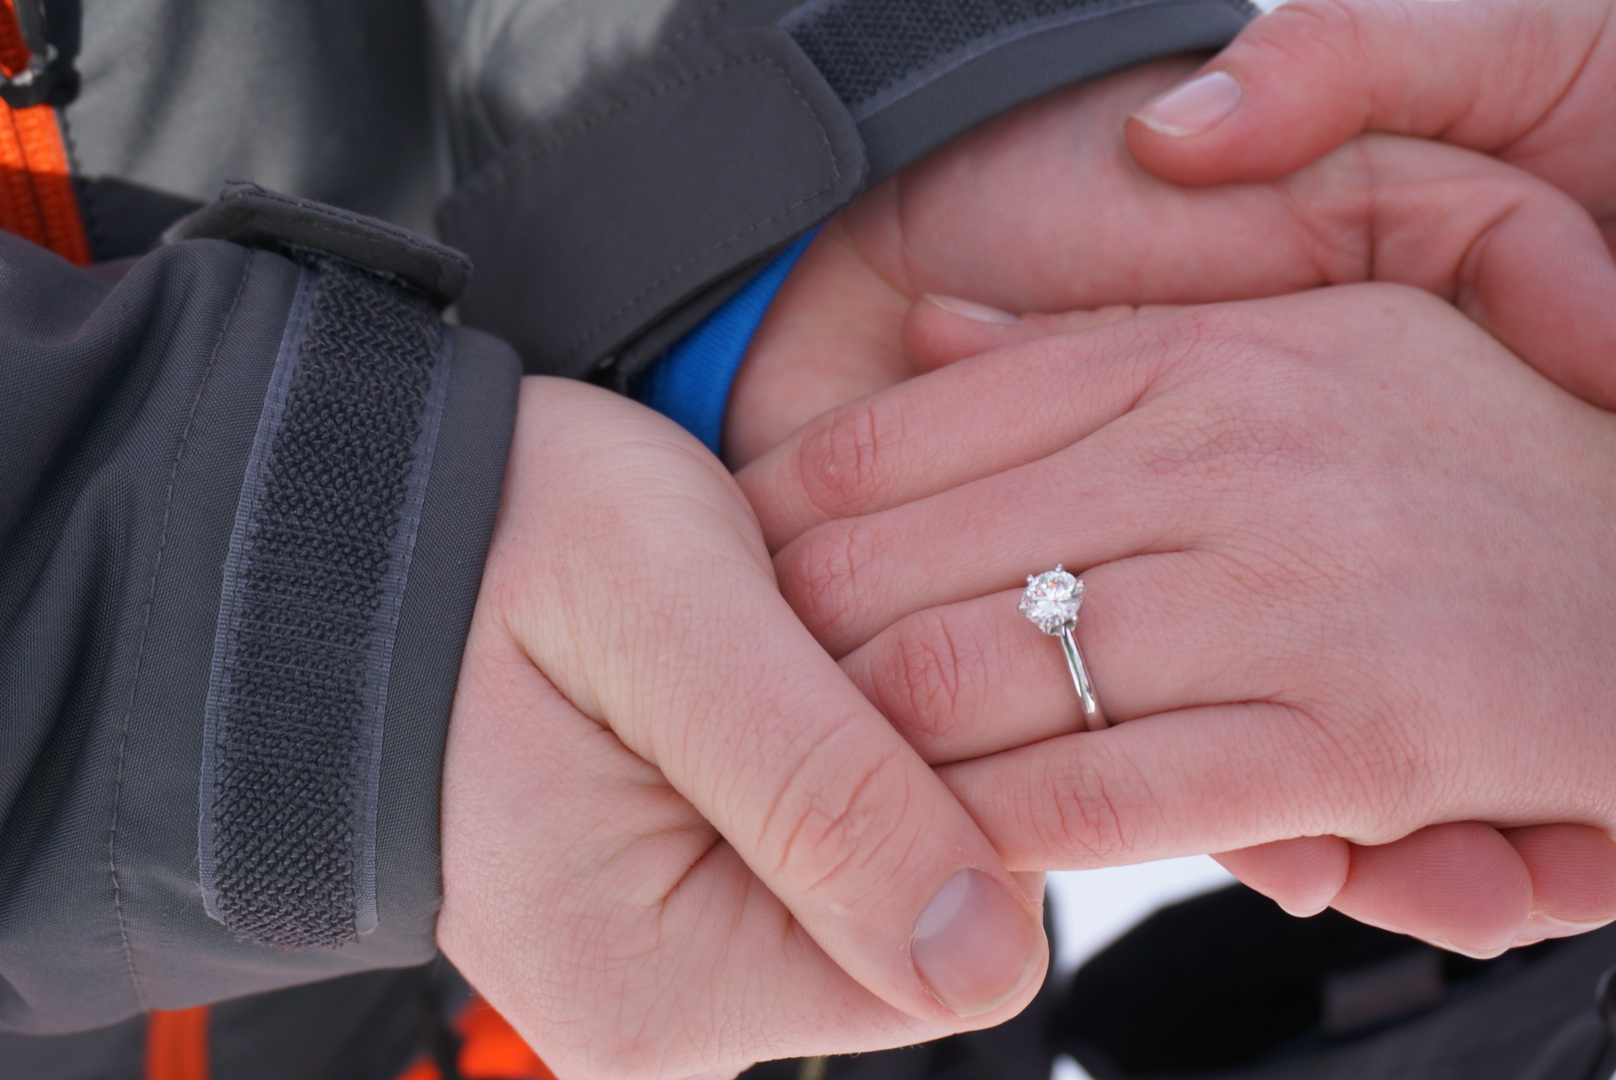 Image 16 of Sarah and Jimmy | The Perfect Mountaintop Proposal